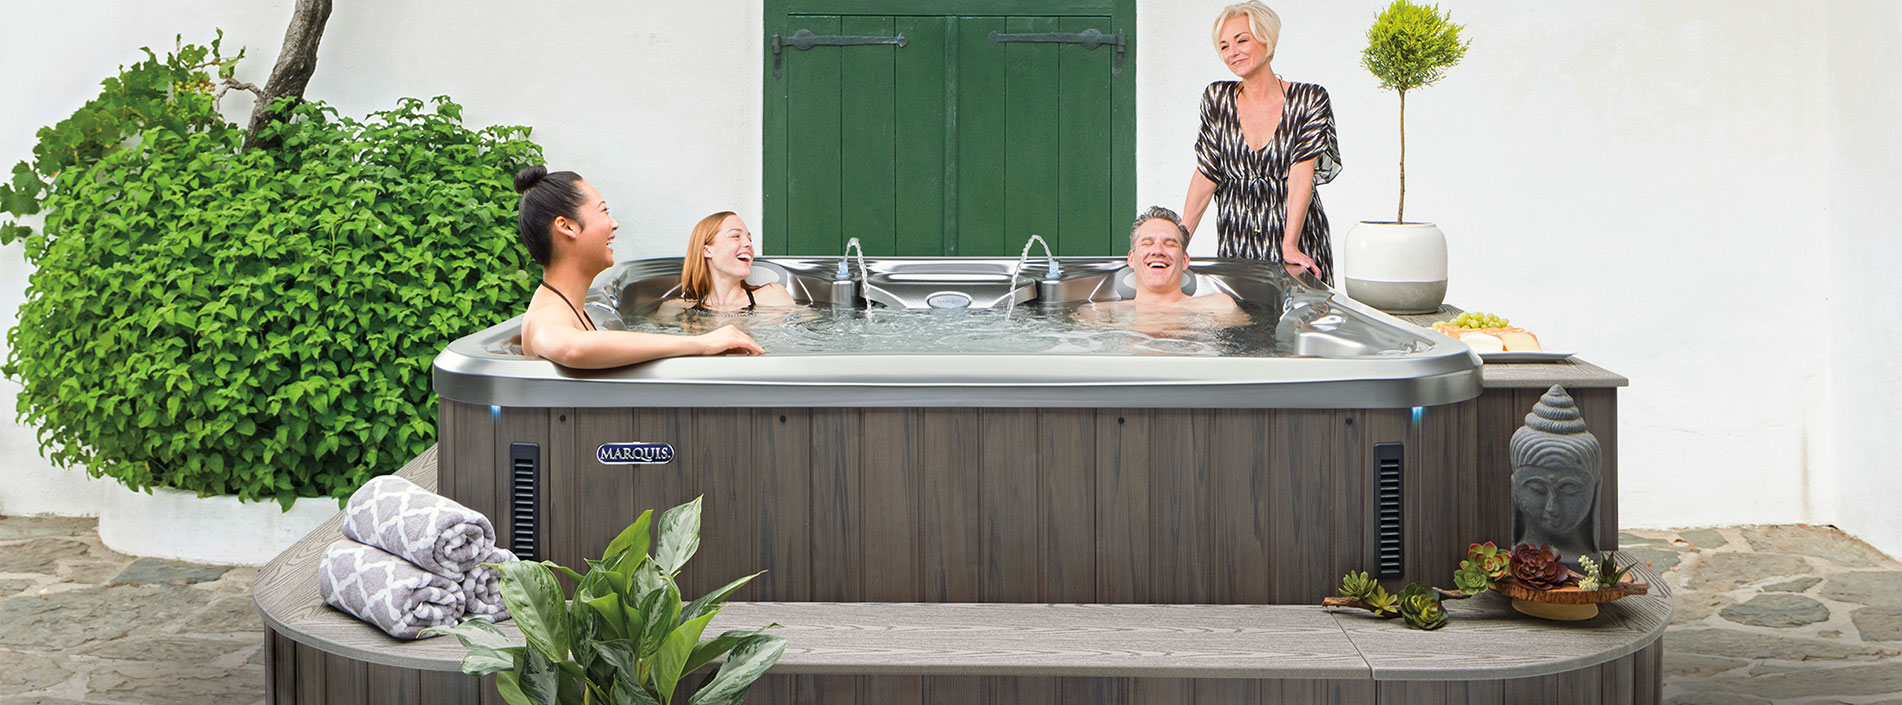 2019 Best Hot Tubs - Therapy Hot Tubs & Portable Spas | Marquis Jacuzzi Hot Tub Model Wiring Diagram on